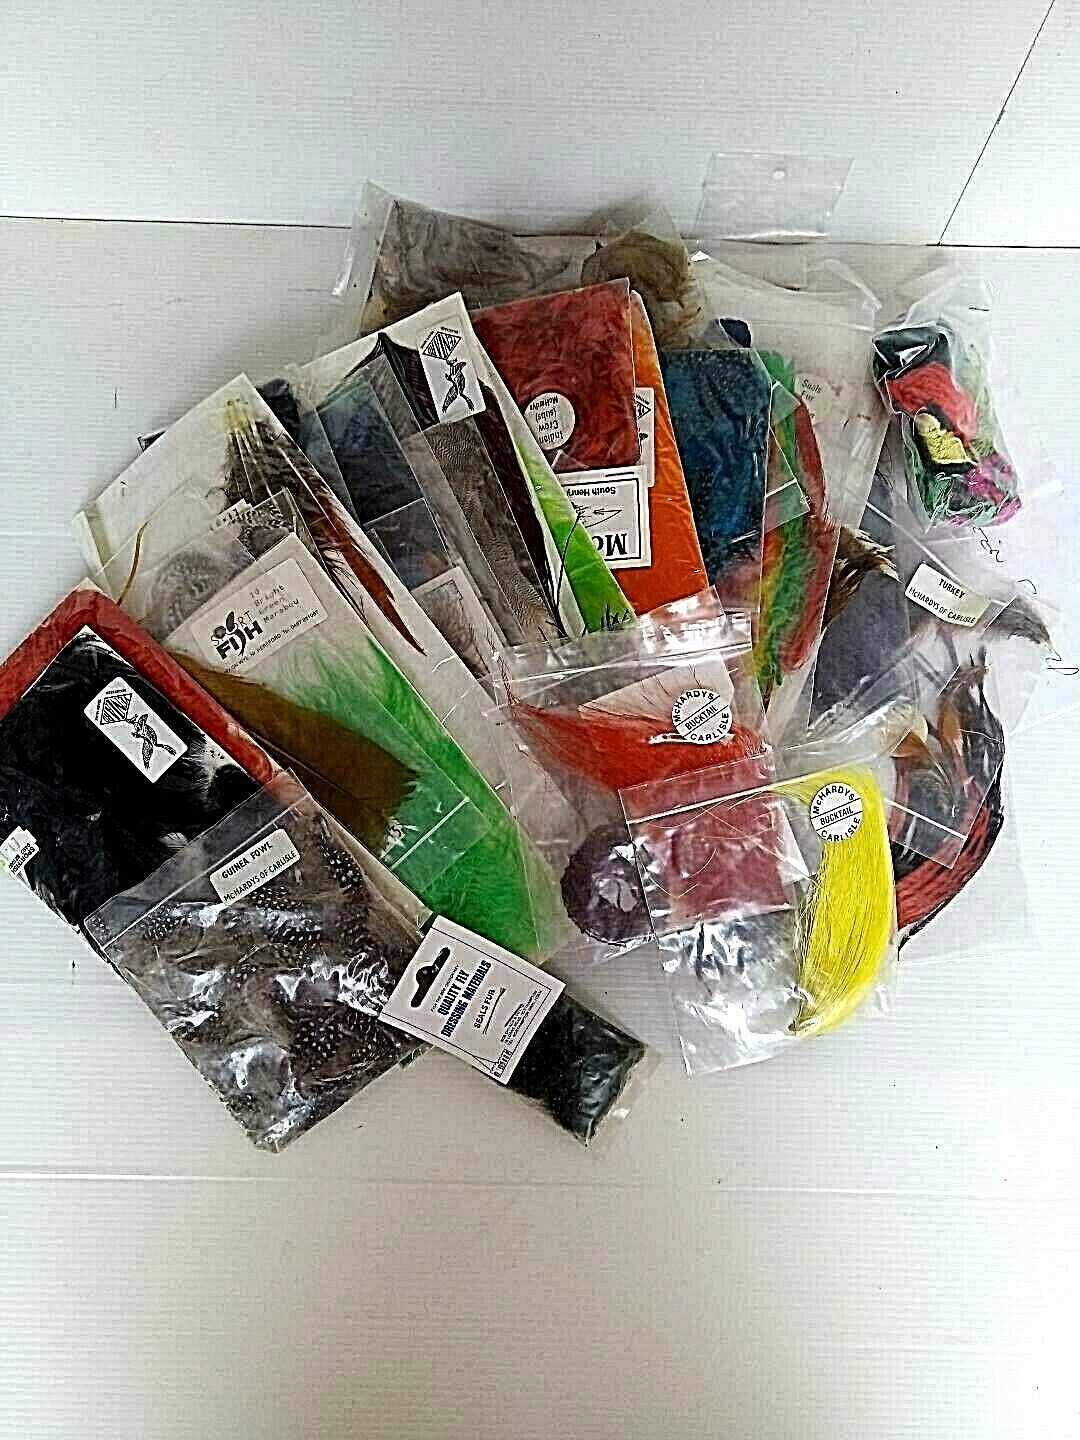 Fly tying selection of feathers, yarns etc. Still in original purchased packets.